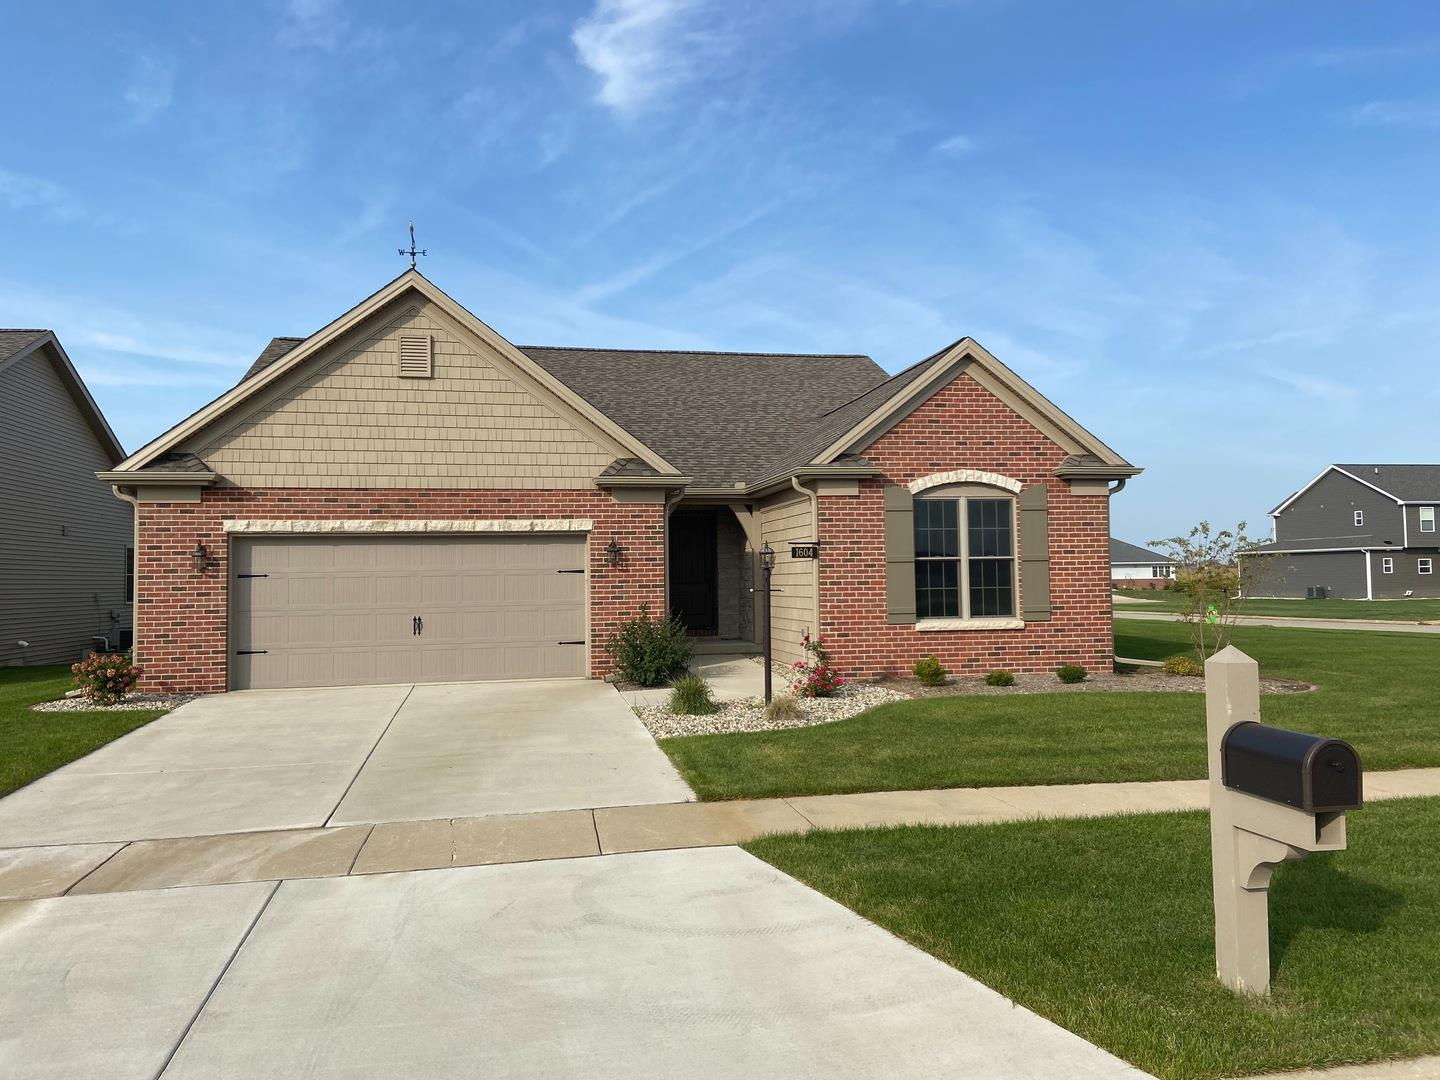 1604 Congressional Way, Champaign, IL 61822 - #: 10271971